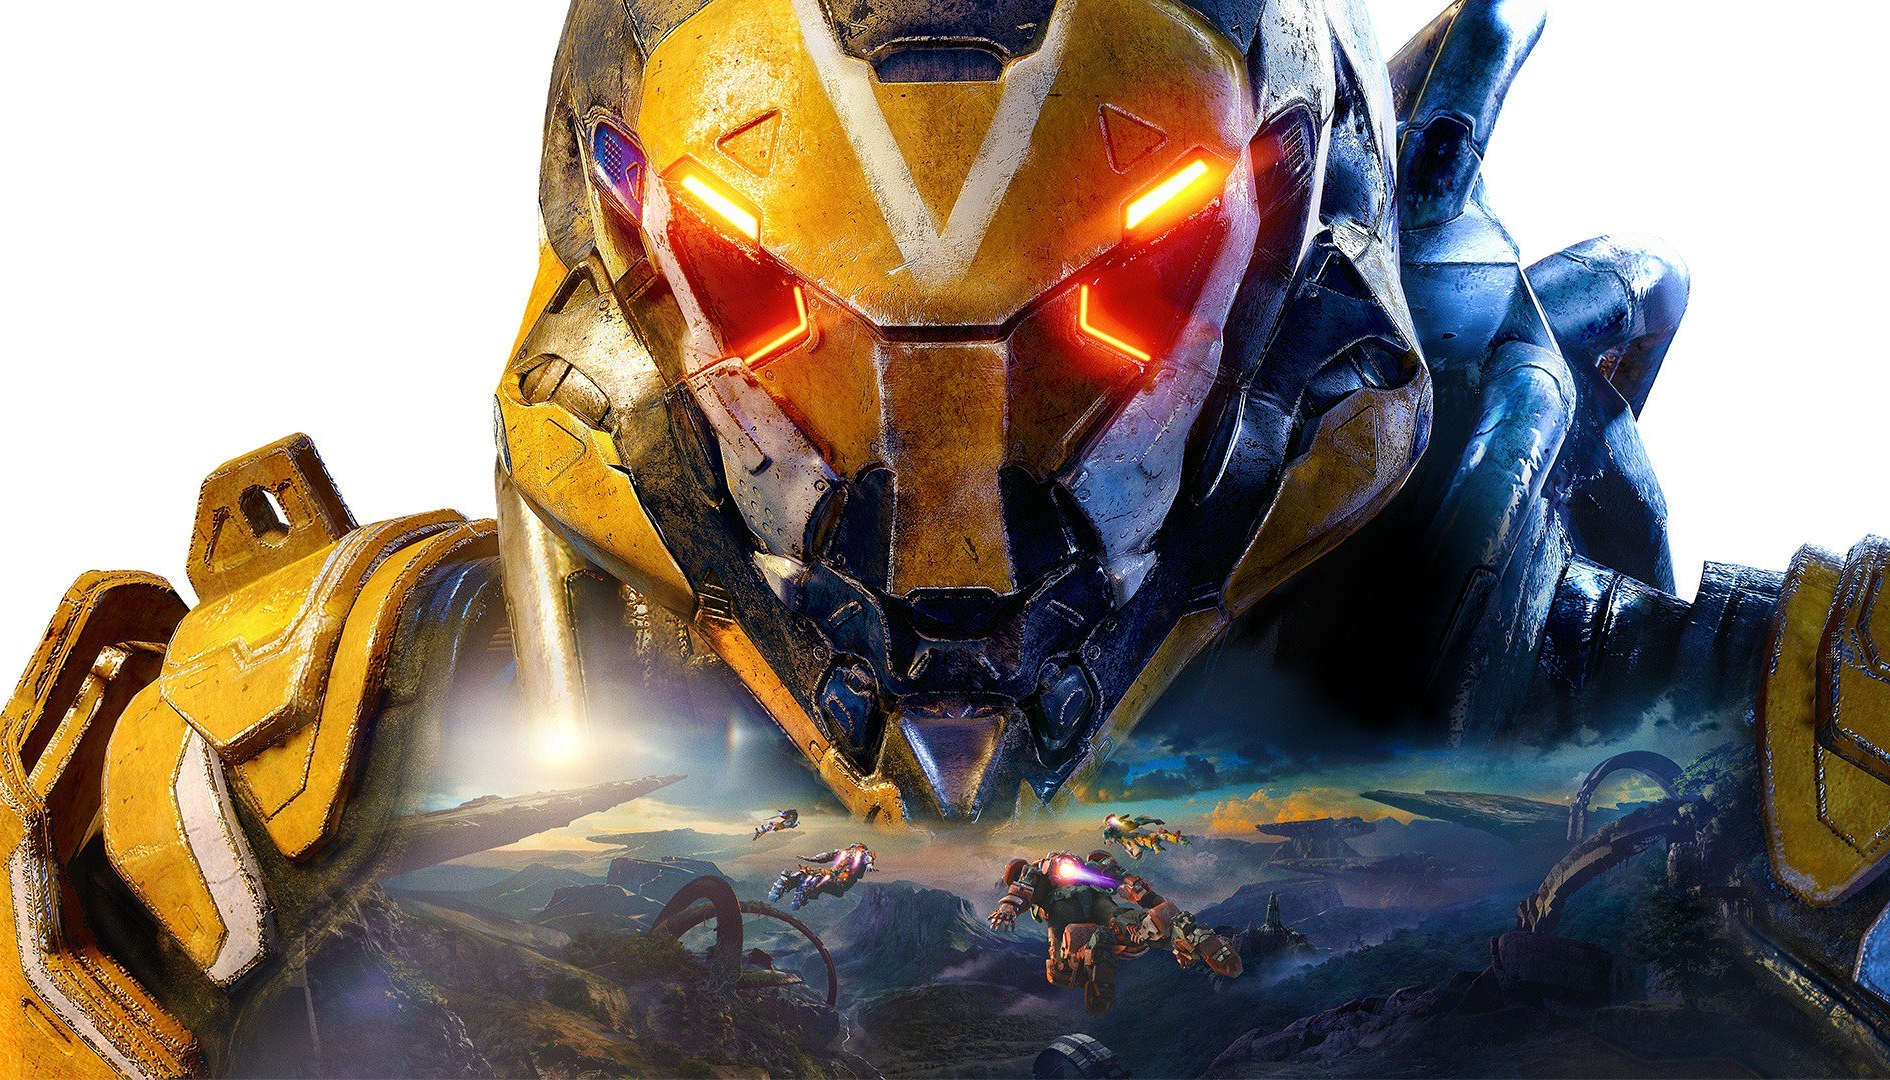 Anthem gratis su PC, PS4 e Xbox One per tutti gli abbonati EA Access e Origin Access